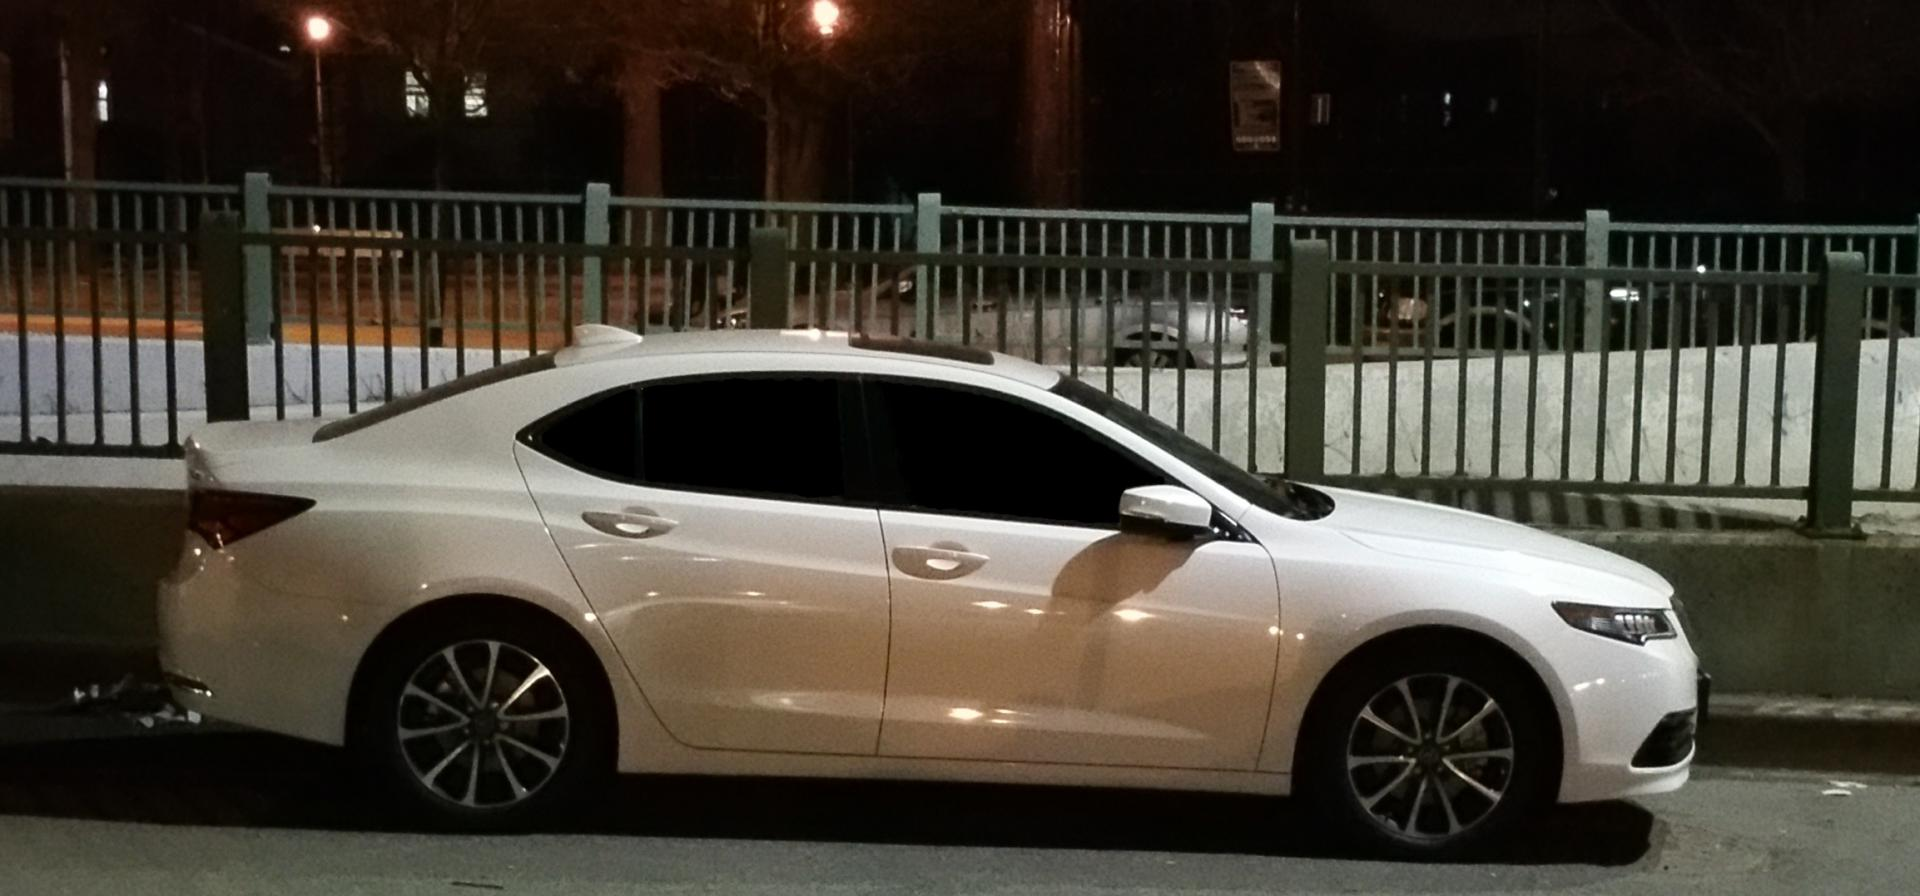 acura tlx white 2016. click image for larger version name 20150406 214025_crtint acura tlx white 2016 e